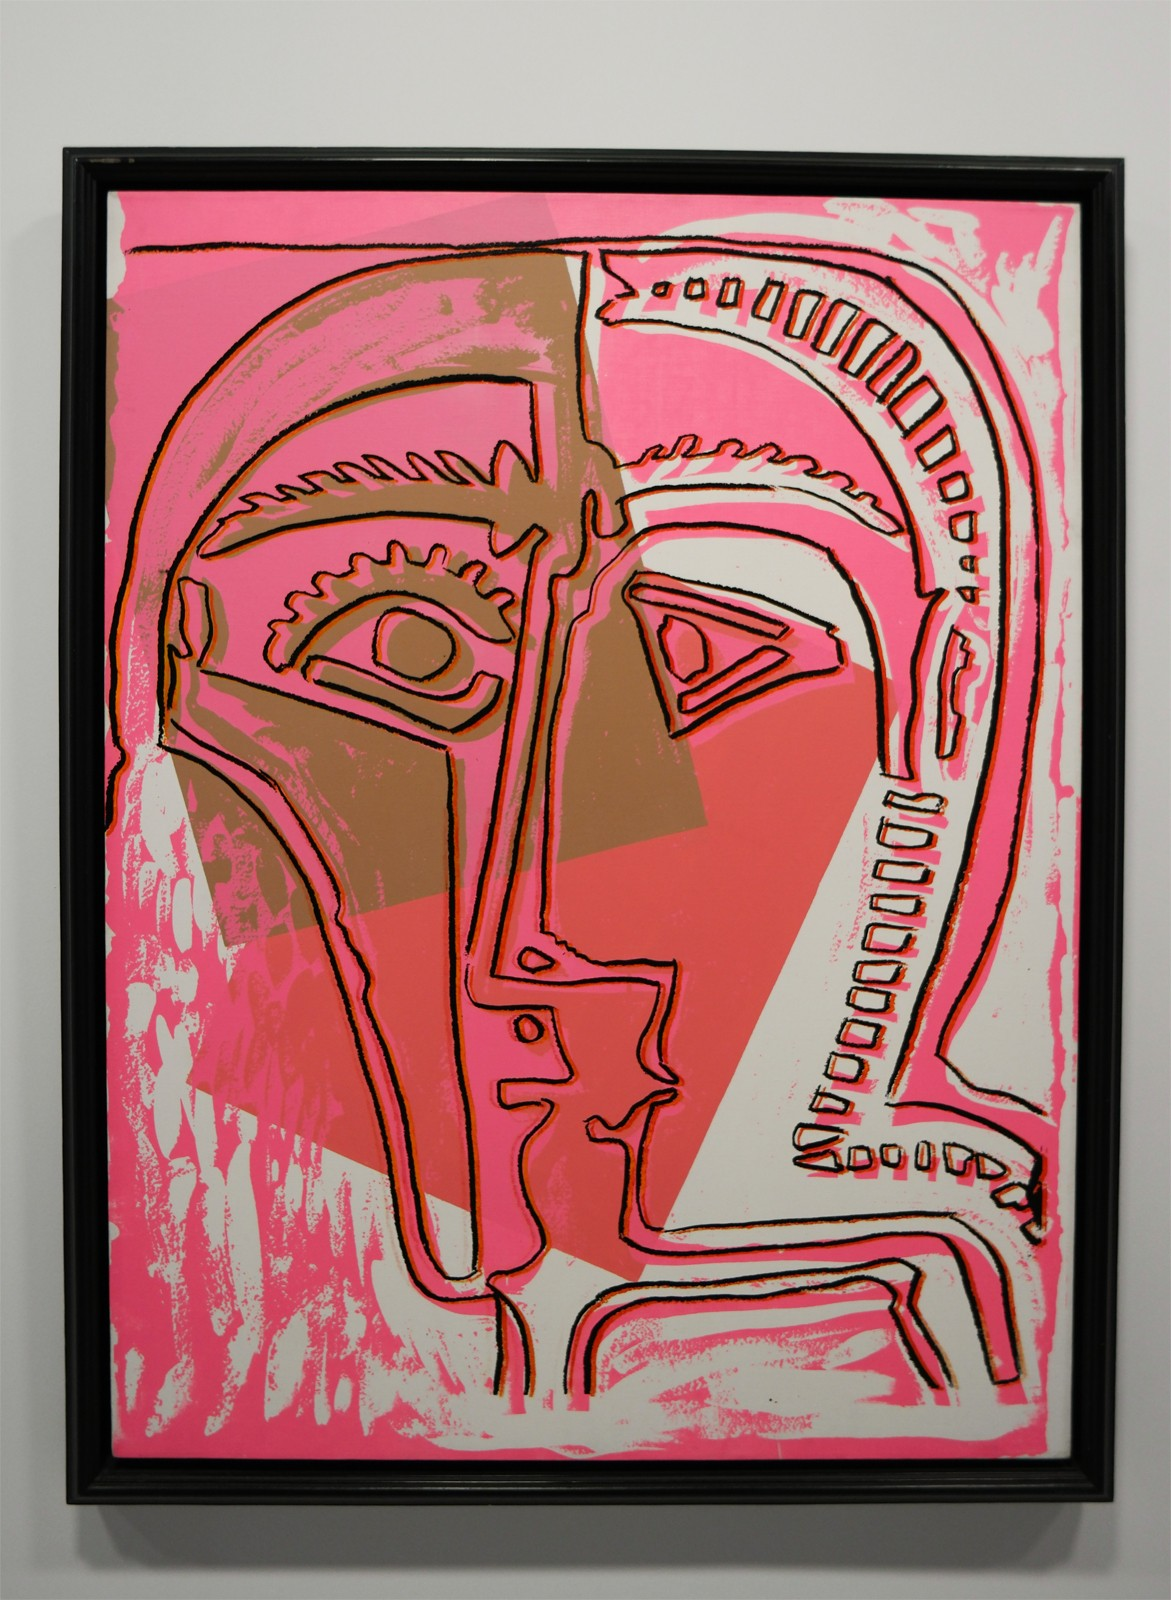 Head (after Picasso), 1985, Andy Warhol